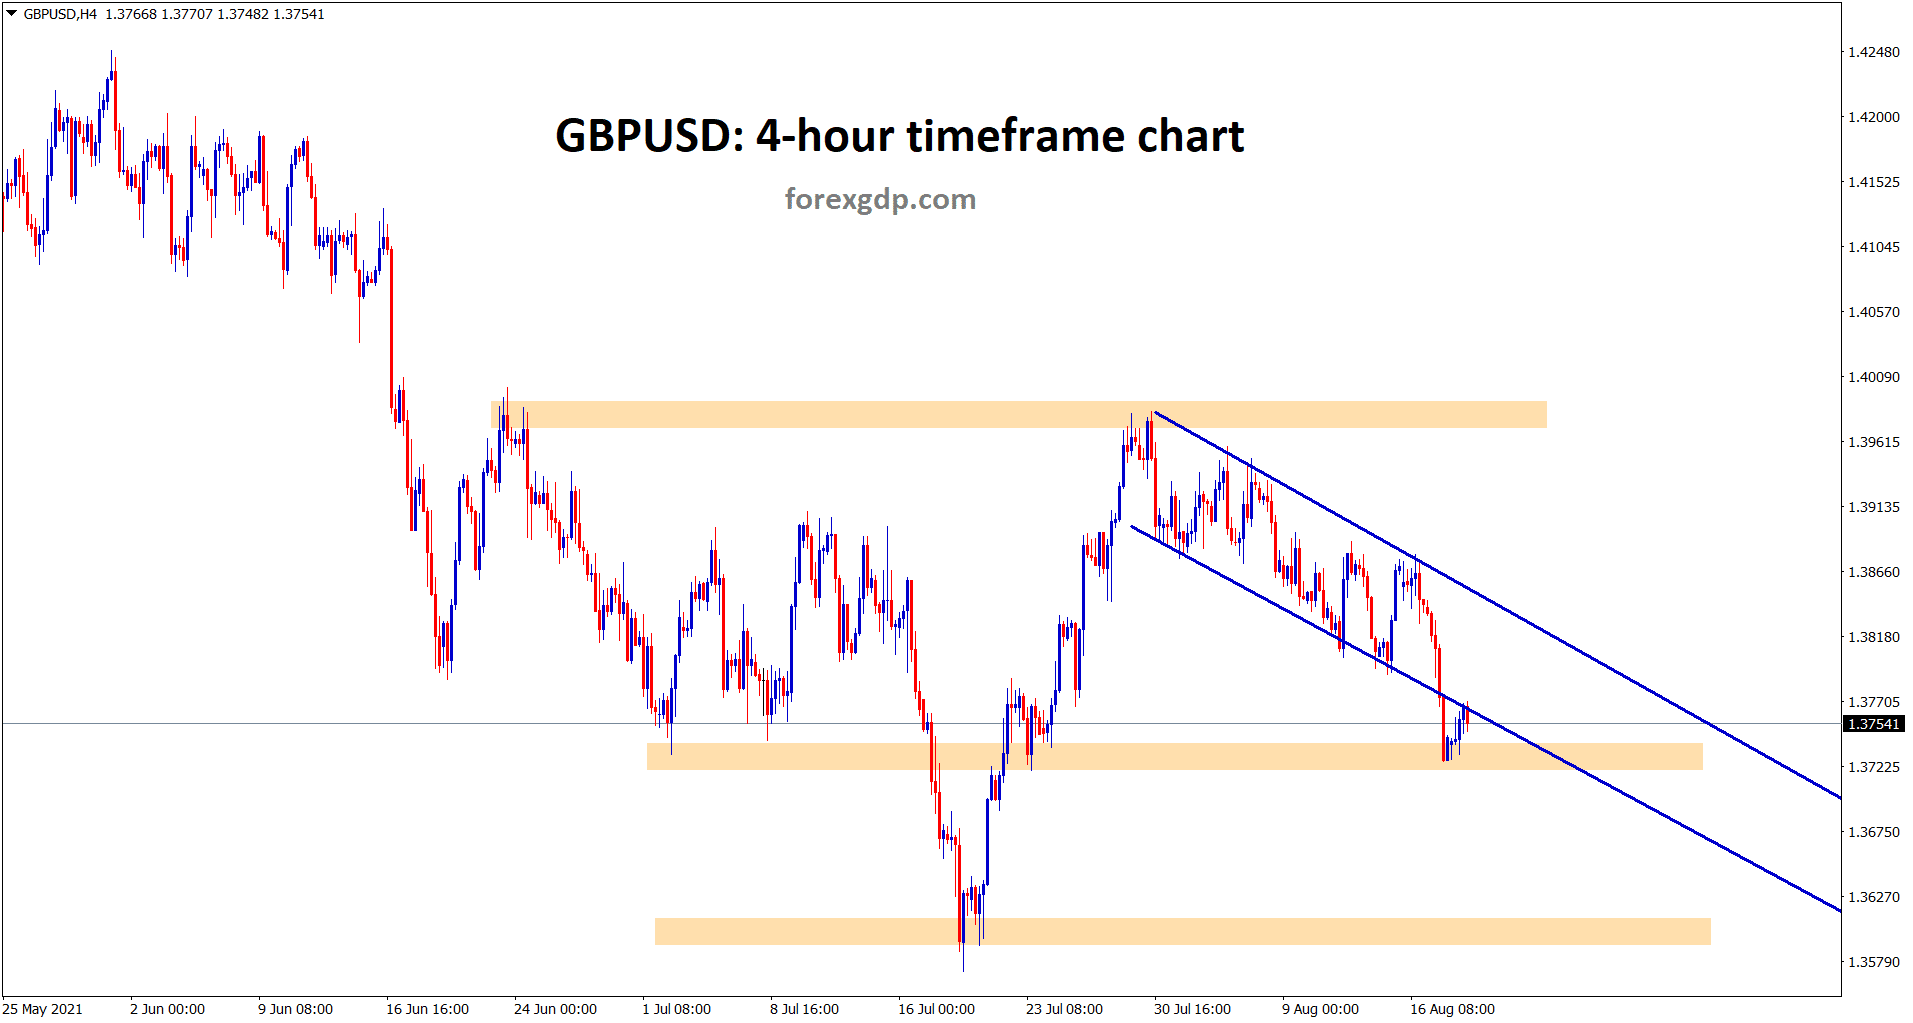 GBPUSD is at the restest area of the descending channel line